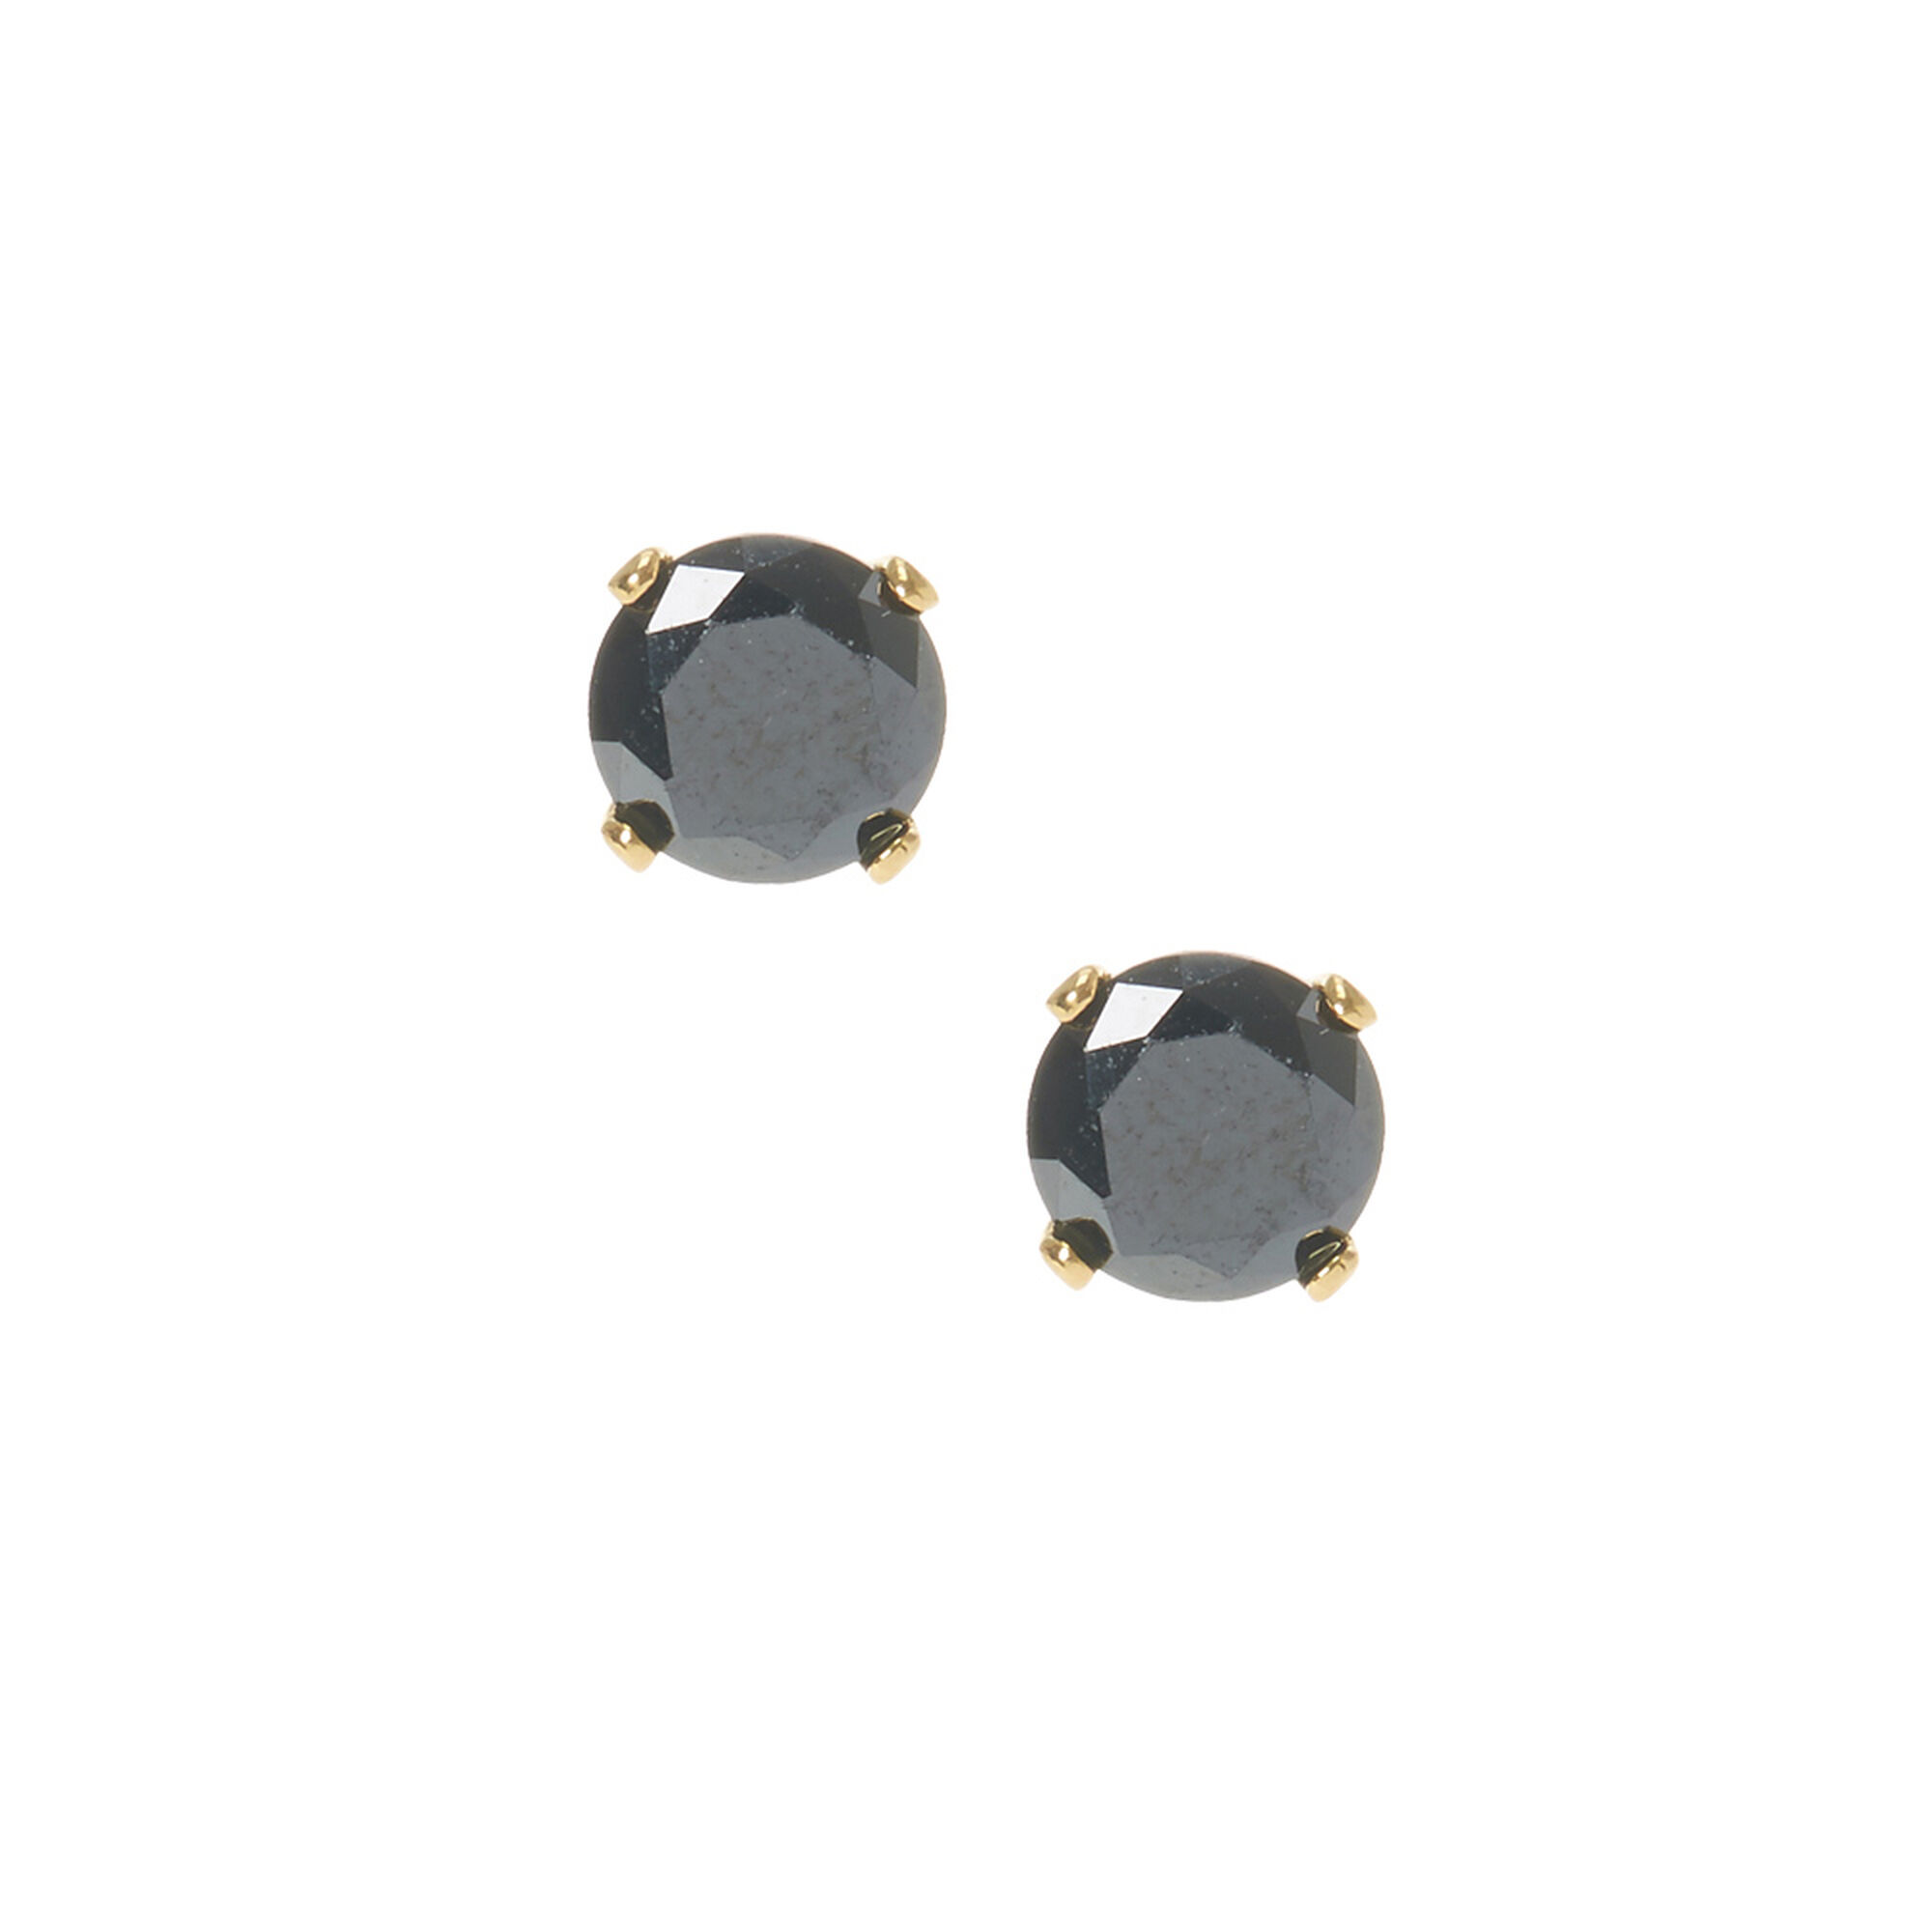 6mm 18kt gold plated cubic zirconia black stud earrings s us